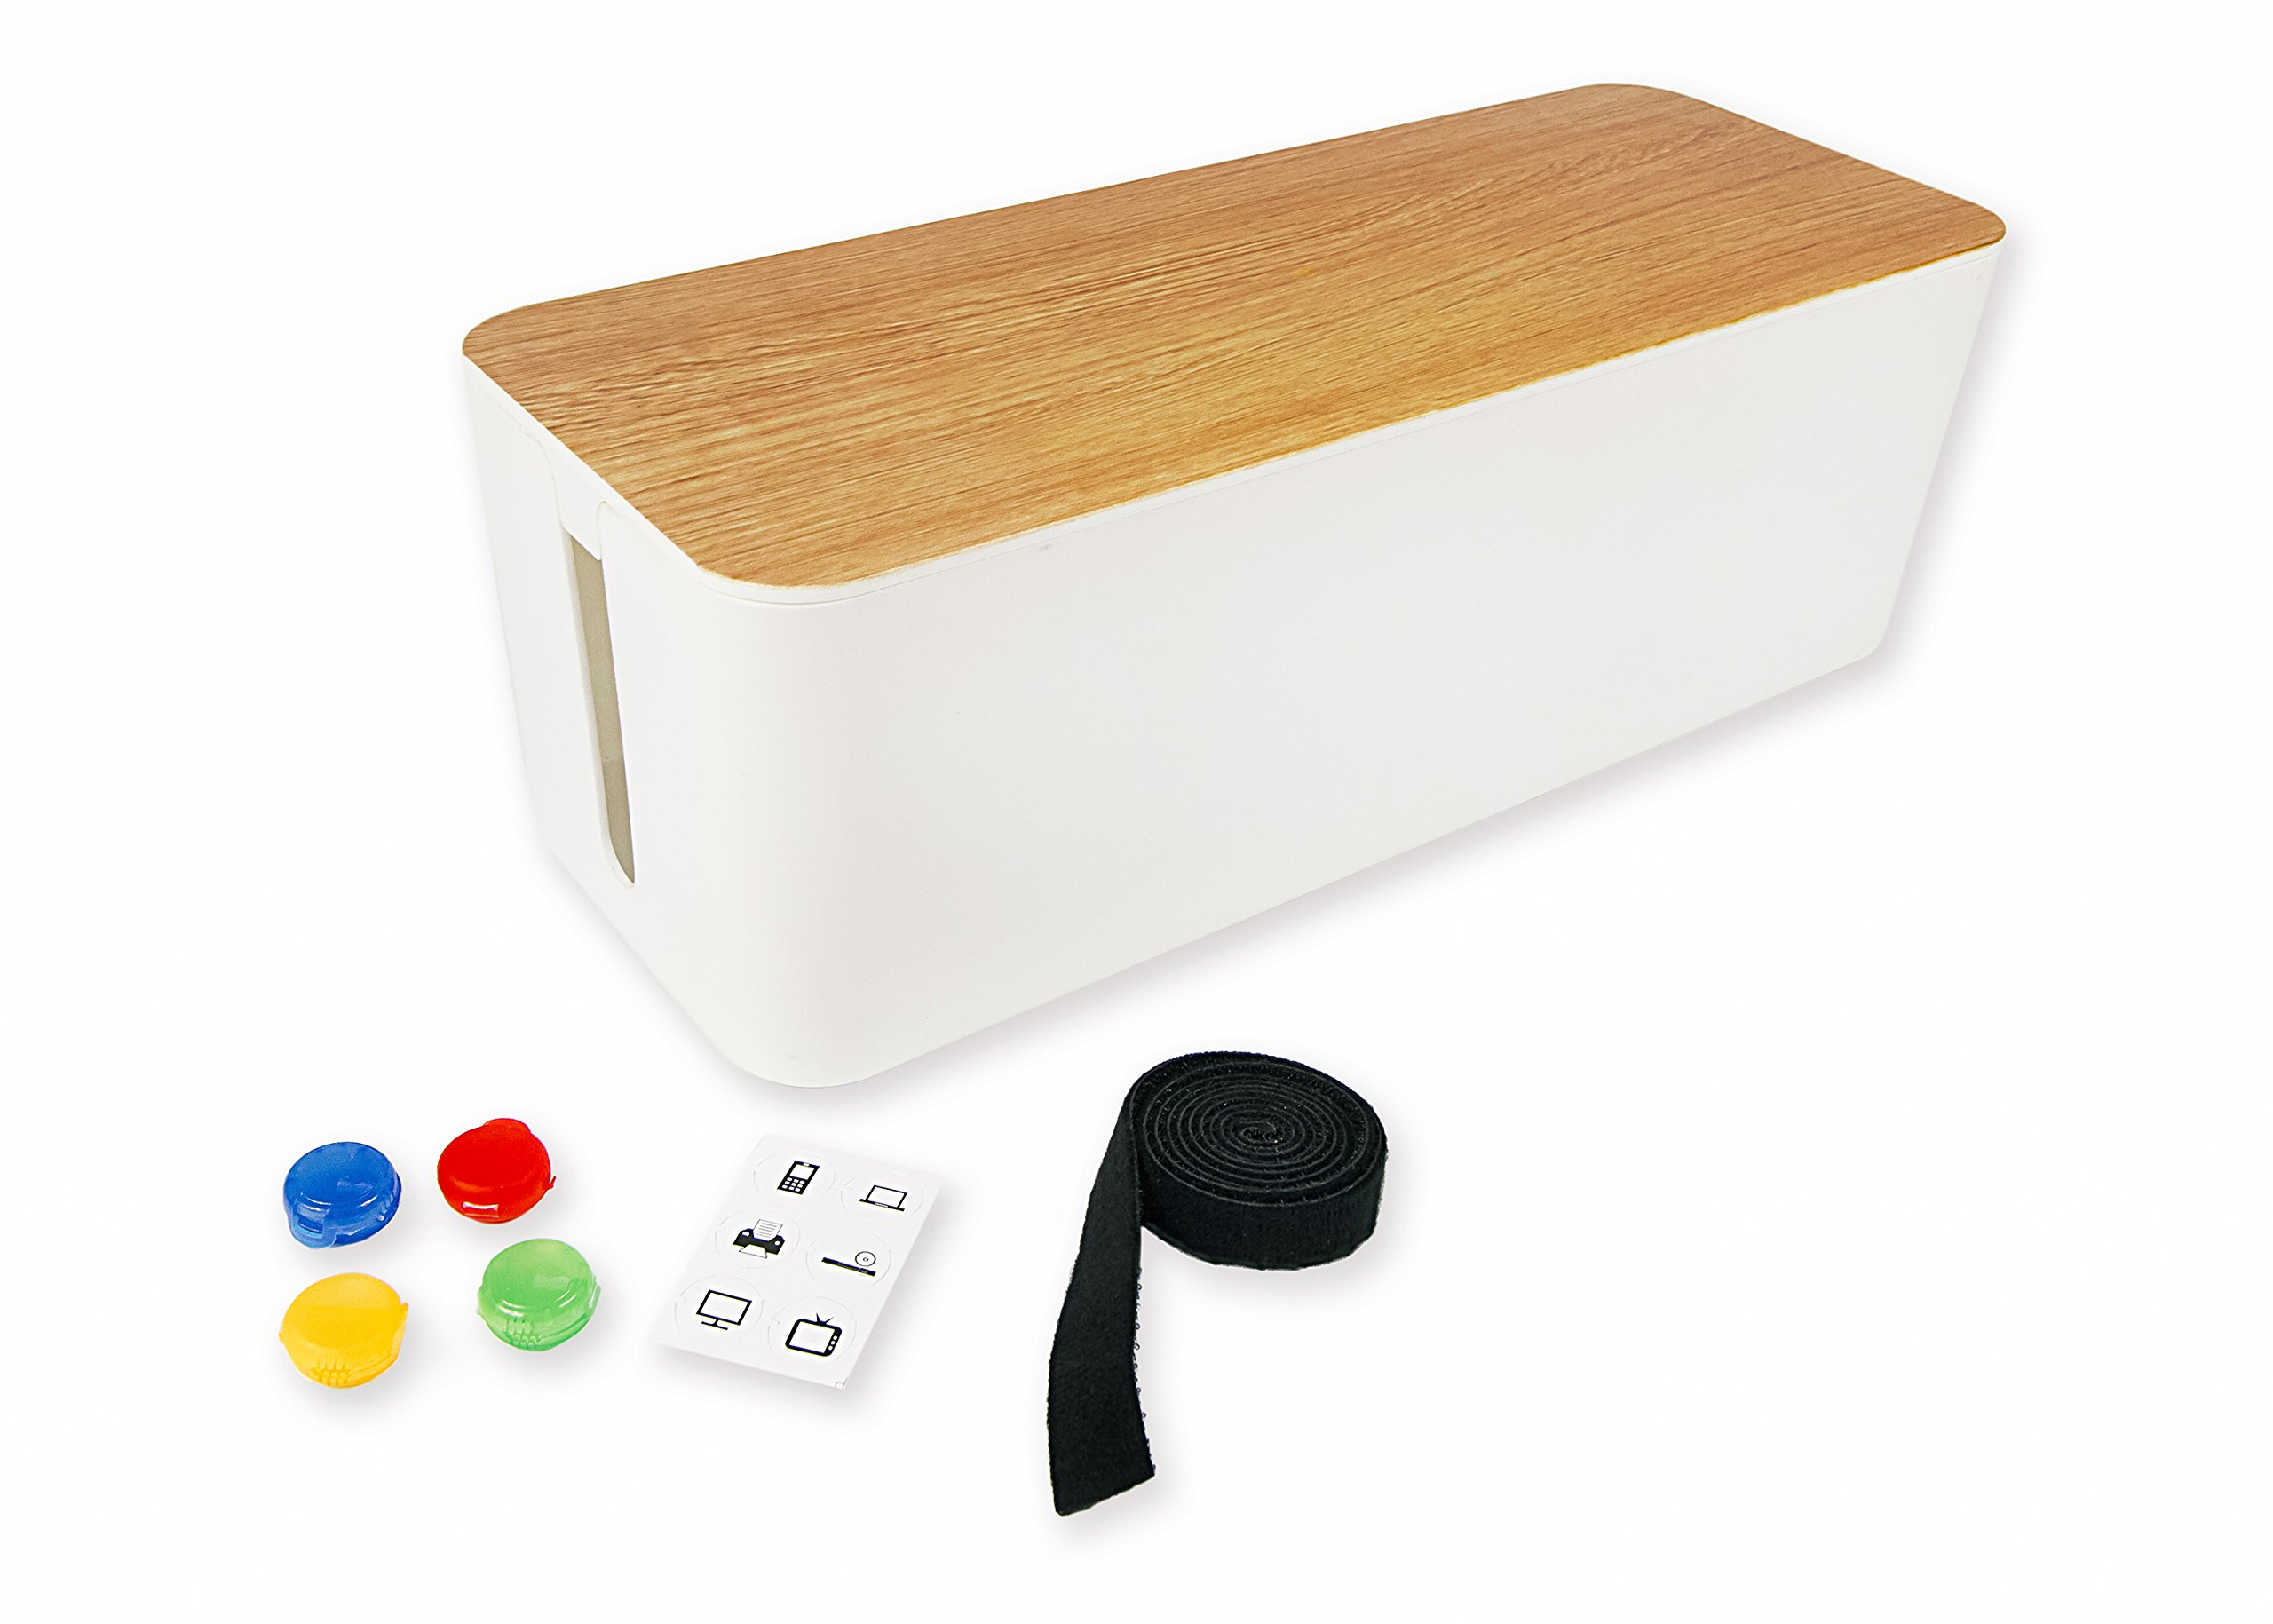 Summit Cable Management Box/Cord Organizer - White With Premium Wooden Style - Cord Hider For Plugs, Surge Protectors, TV Wires/Cables - Includes Unique Cable Tidy Plus Easy Clip Cable Organizer by SUMMIT BY WHITE MOUNTAIN